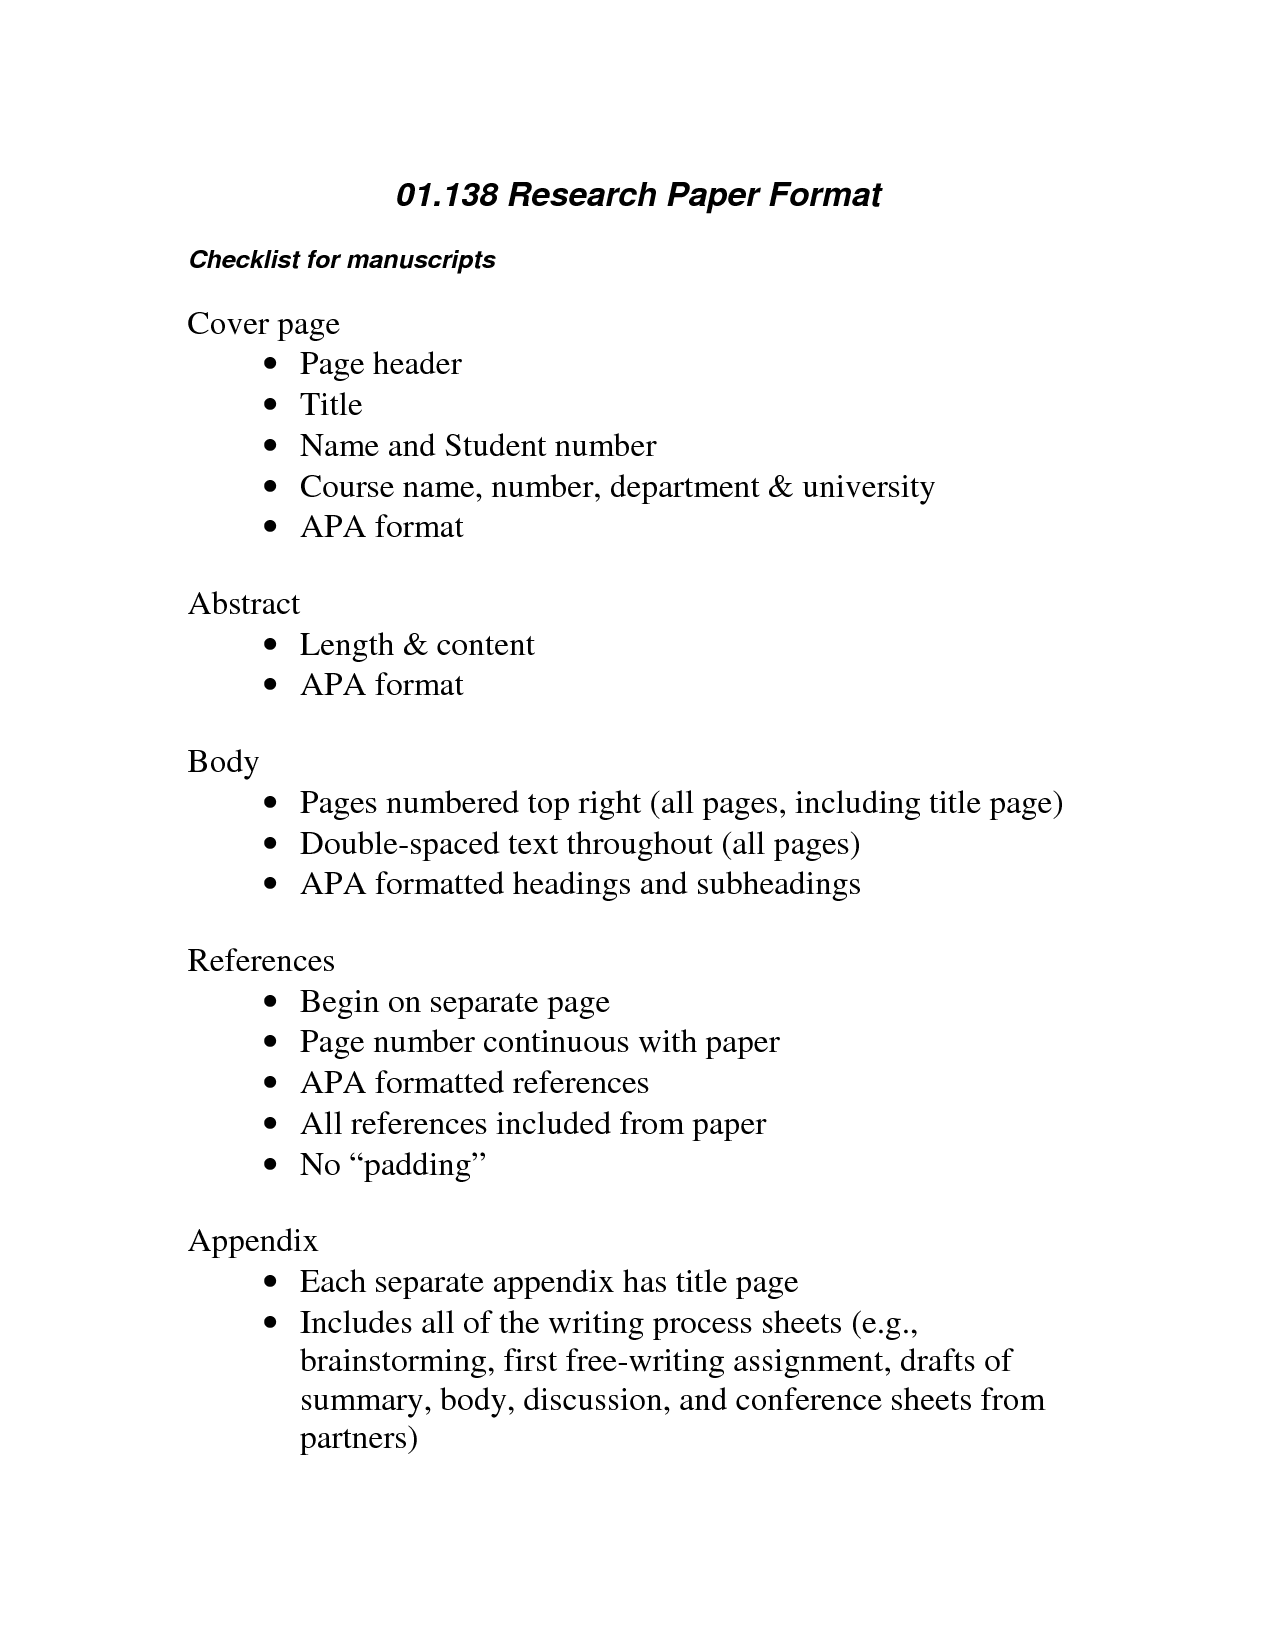 028 Apa Research Paper Format Generator Surprising Citation Full